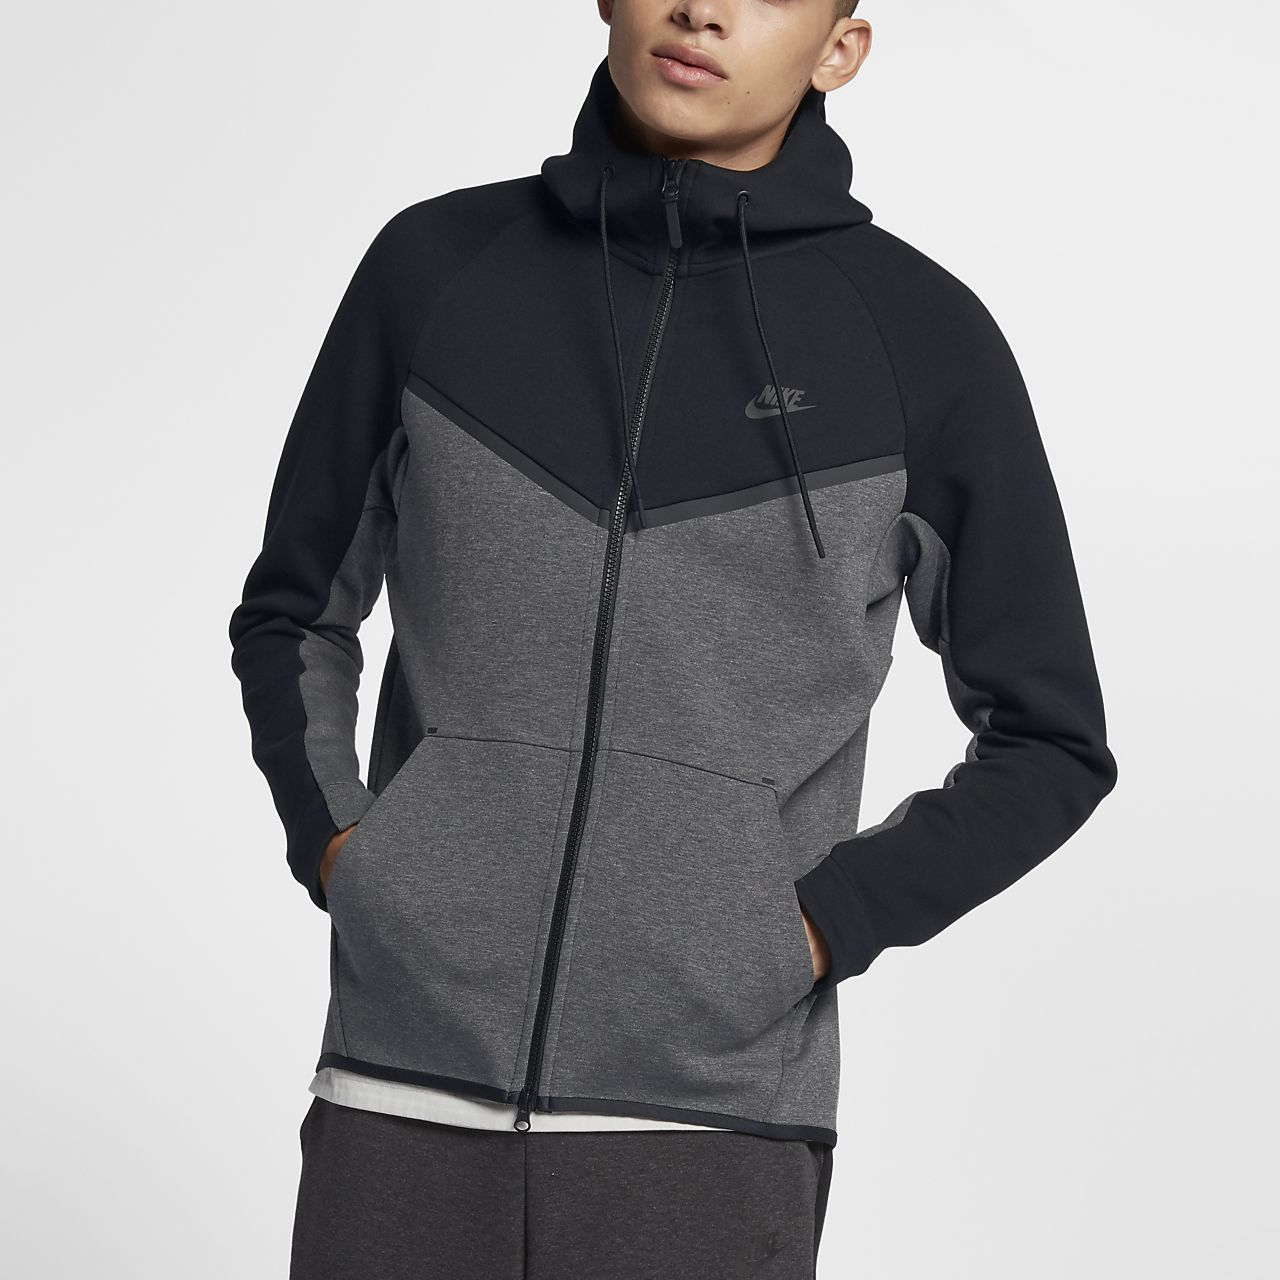 130 / Nike Sportswear Tech Fleece Windrunner Men's Full